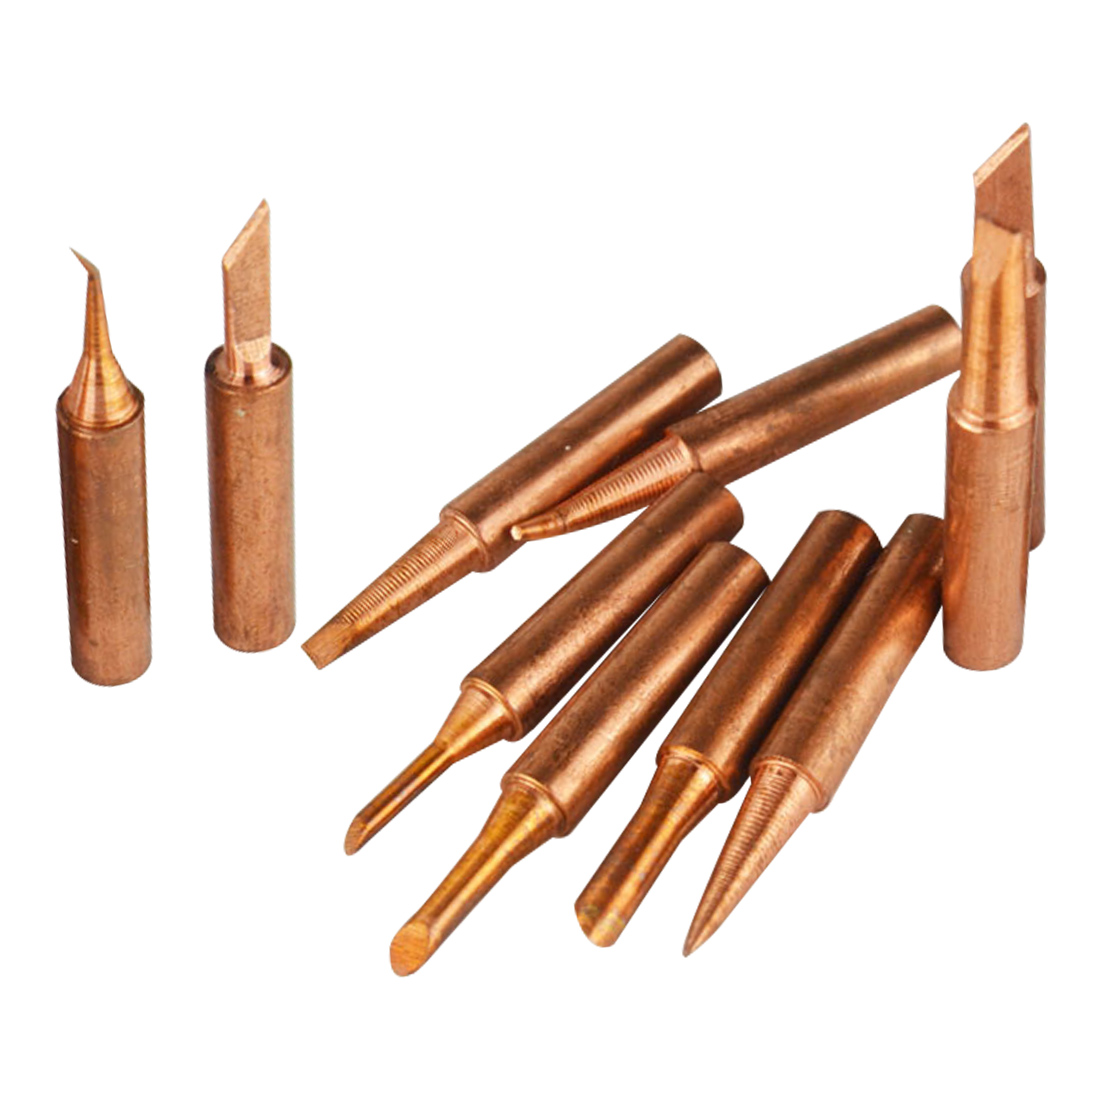 5 Pcs Pure Copper 900M-T Soldering Iron Tip Lead-free For Hakko Soldering Rework Station Soldering Tips